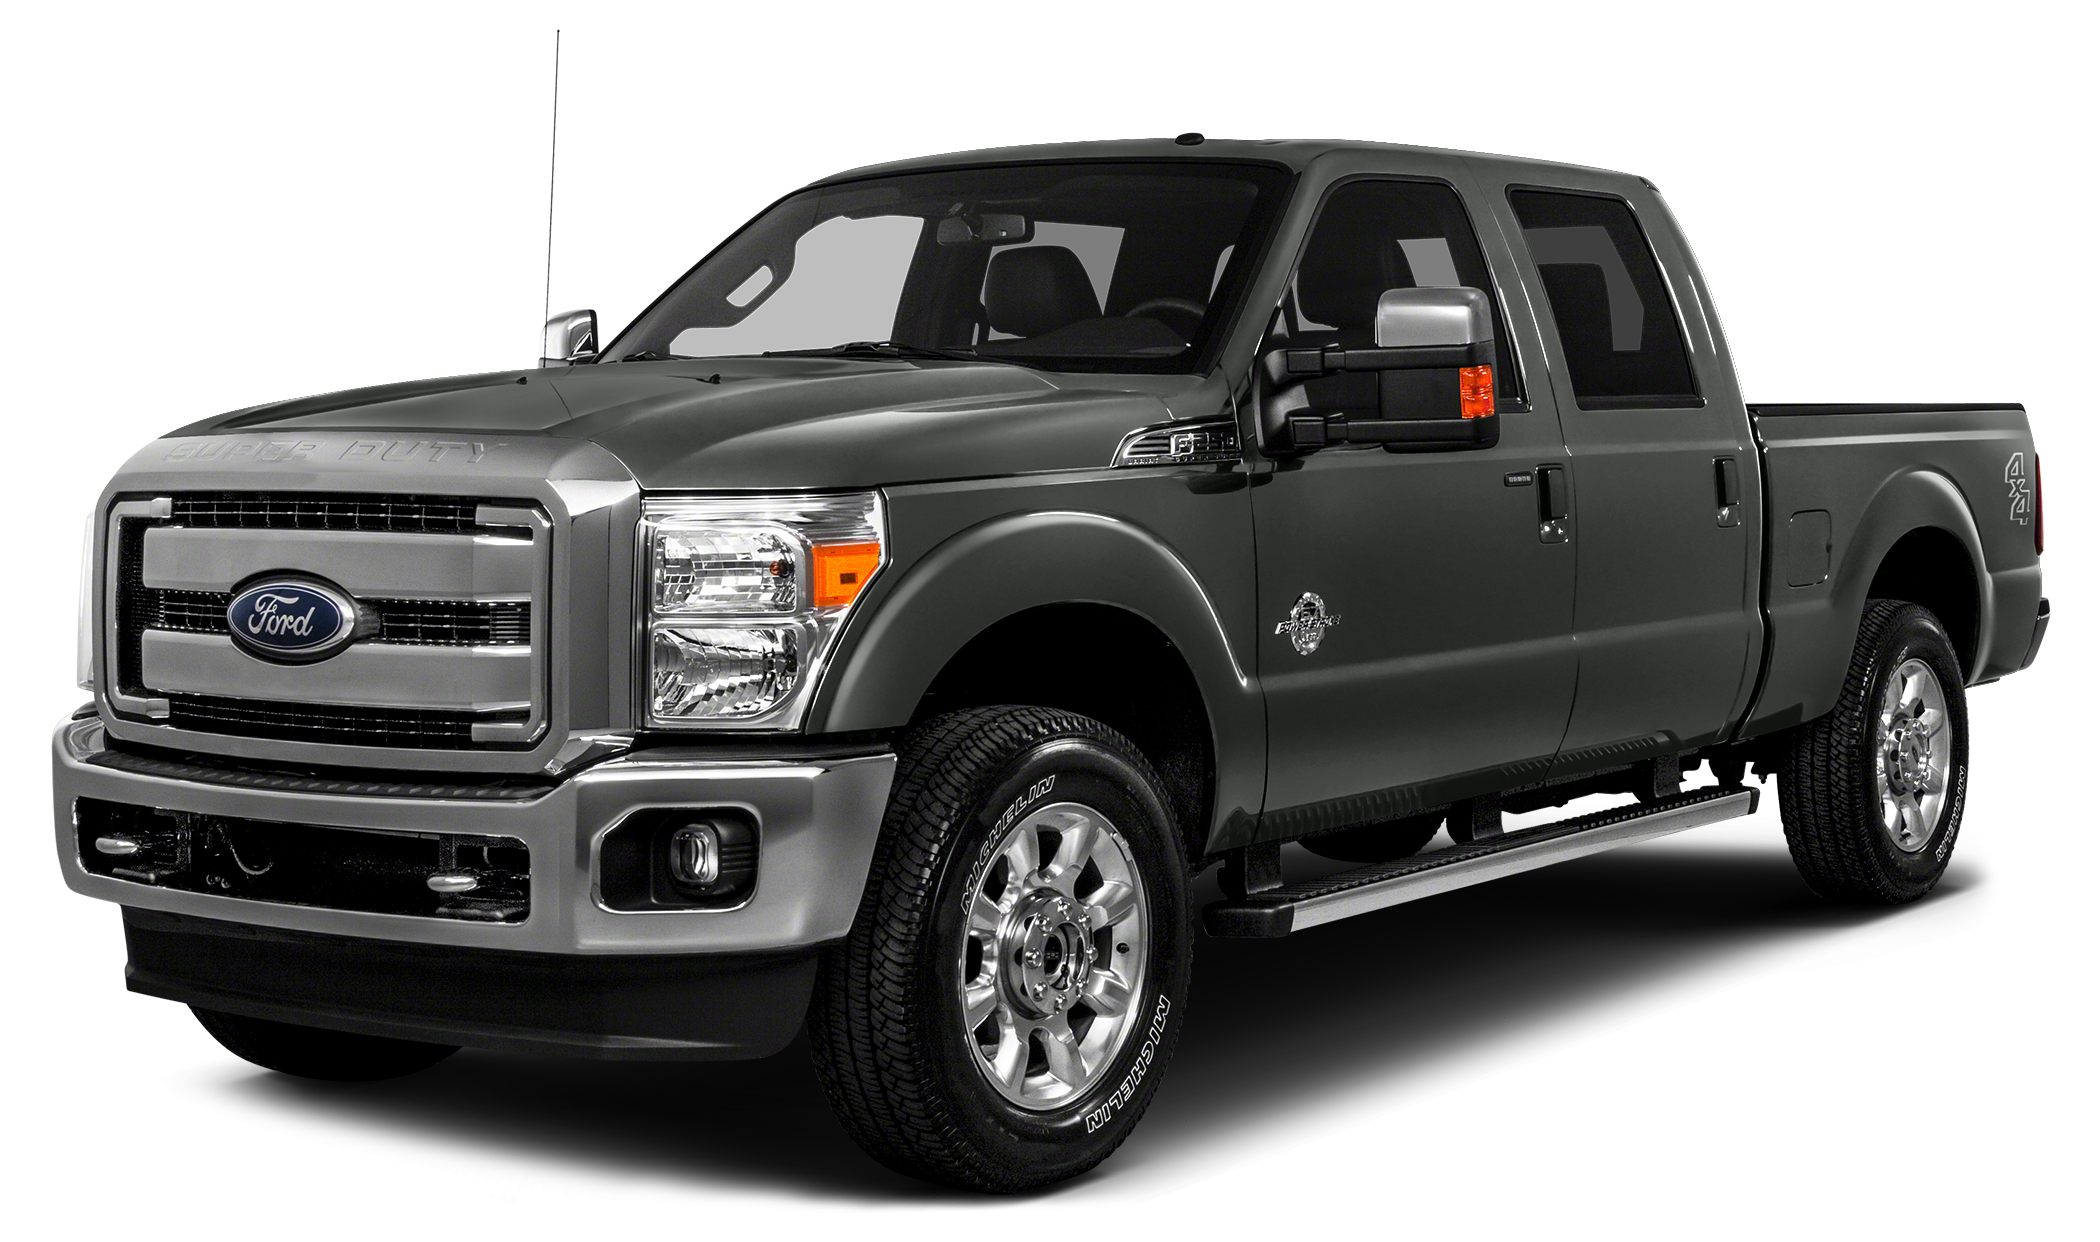 2015 Ford F-250 XLT 4D Crew Cab Power Stroke 67L V8 DI 32V OHV Turbodiesel TorqShift 6-Speed Au